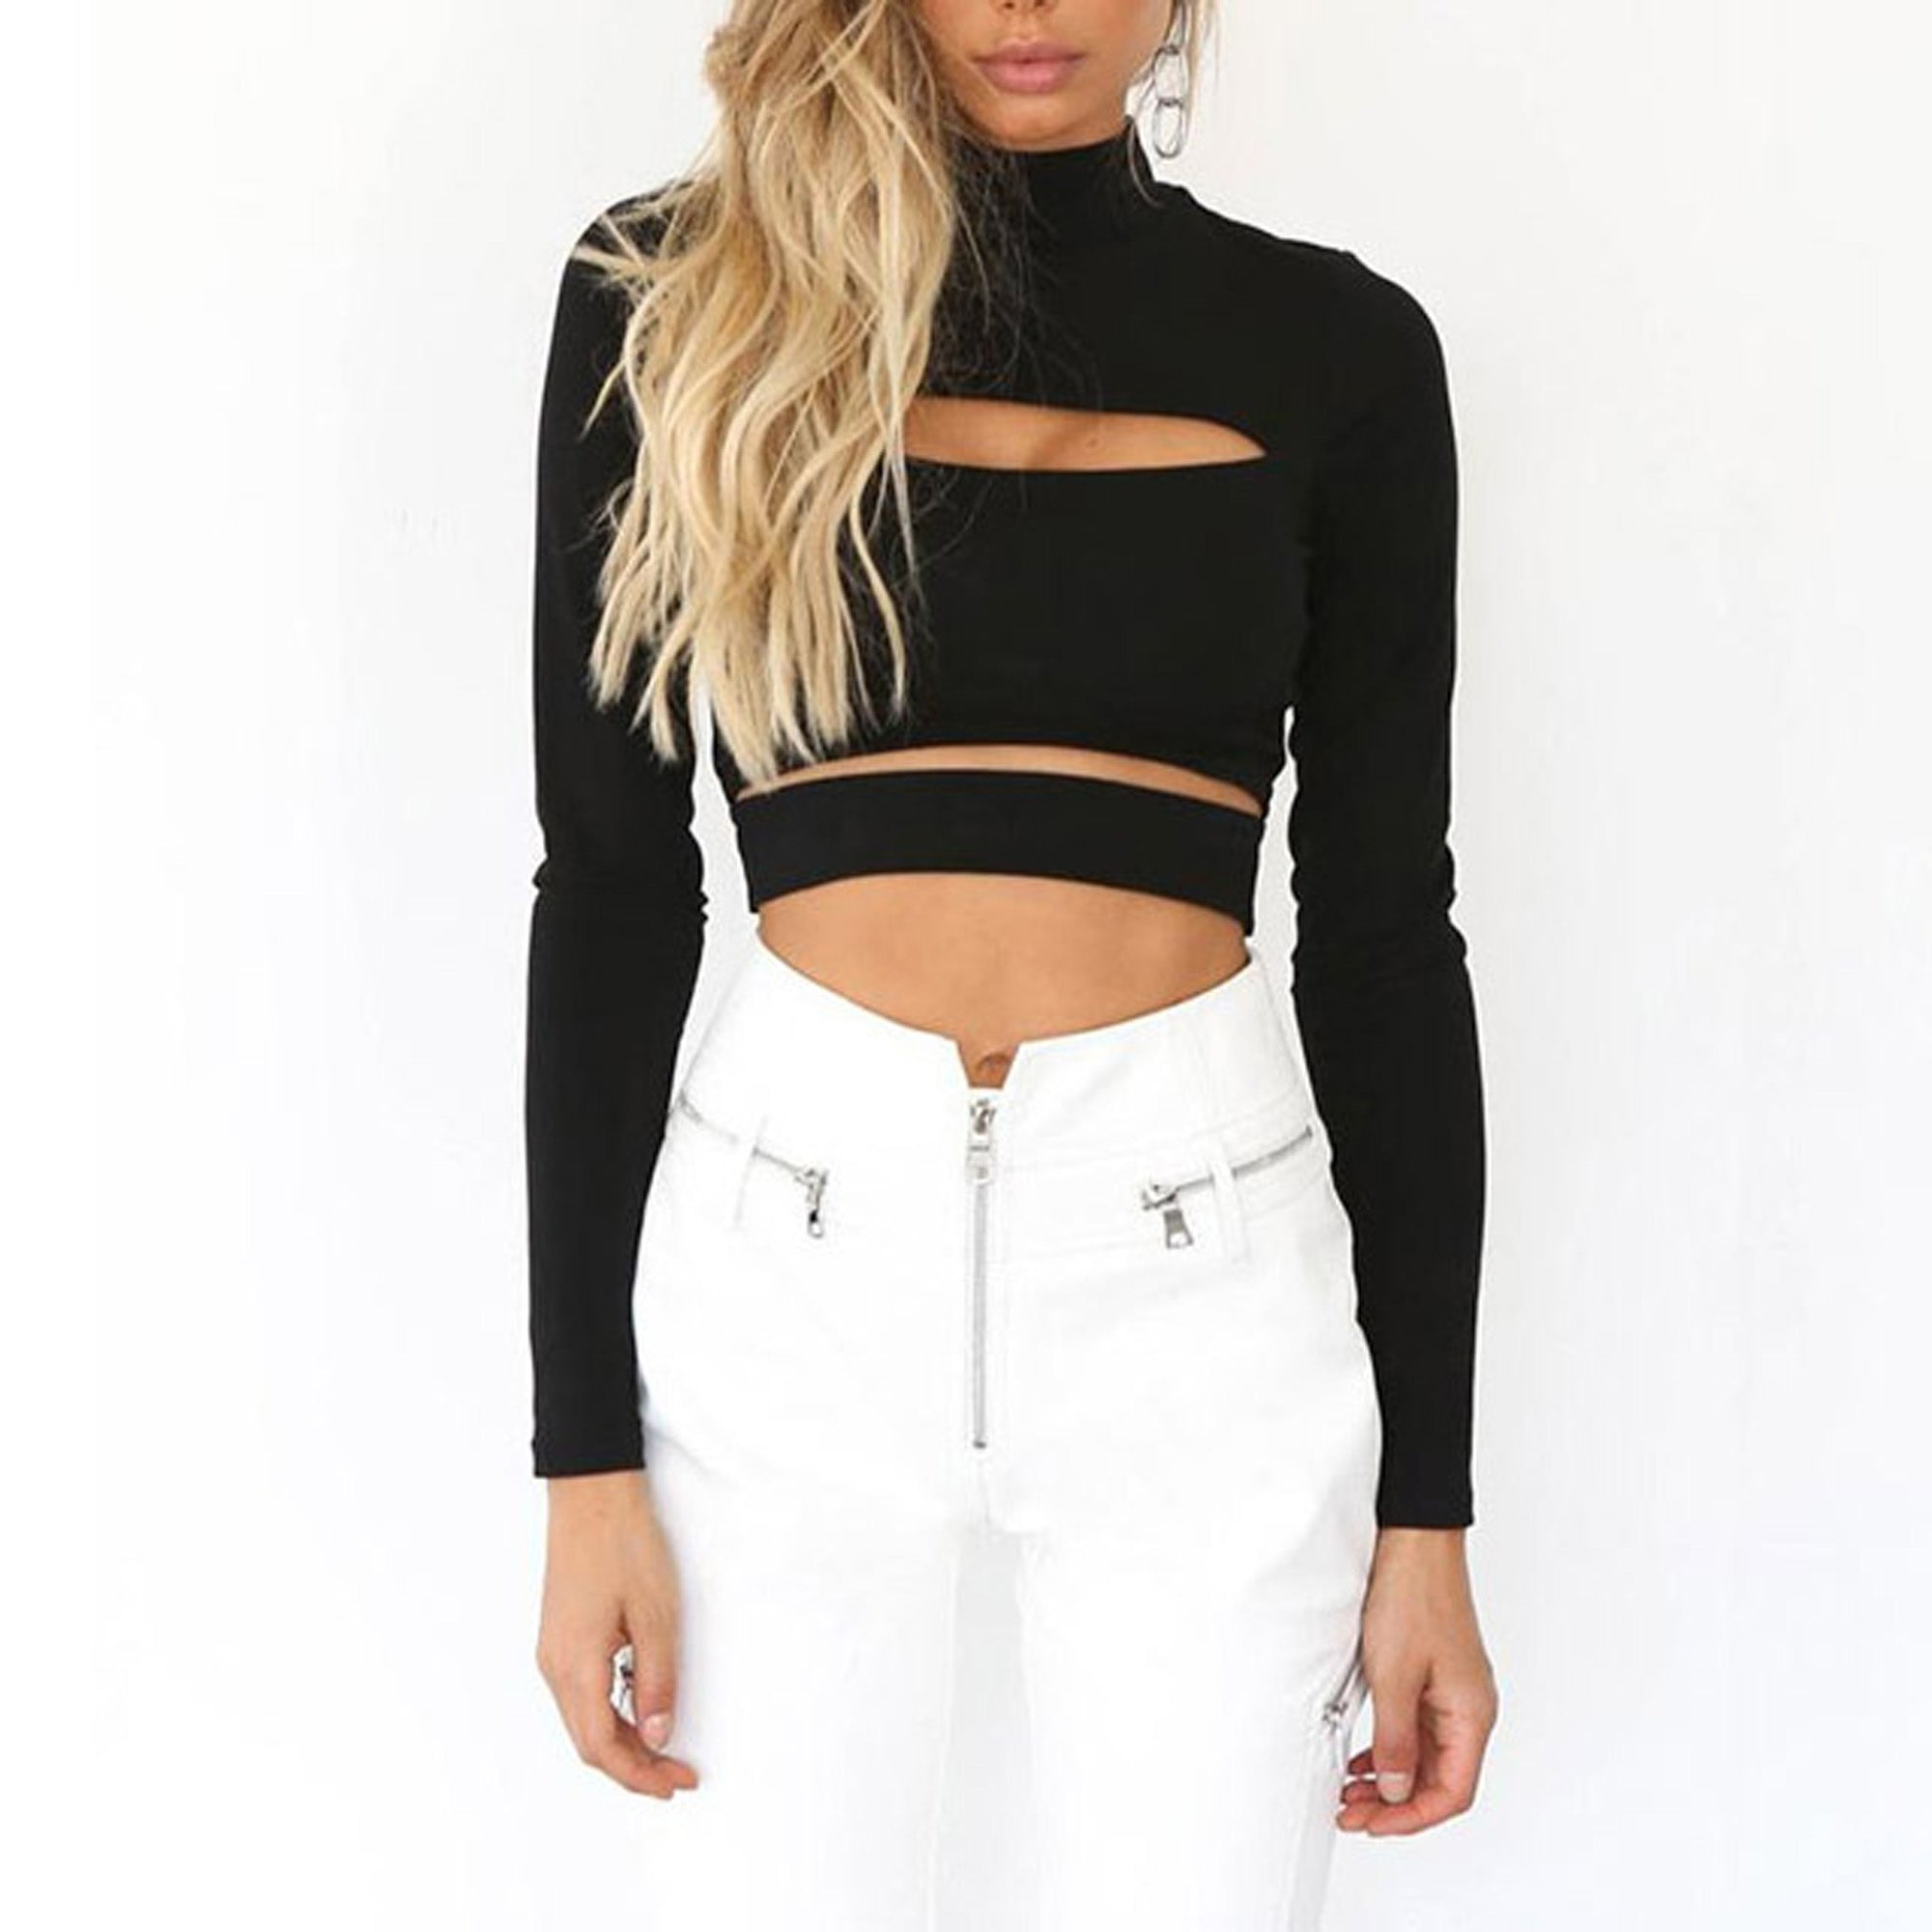 a5baa21628 ... Baddie Fall Outfit Ideas for Women 2018 - Cute Black Sweater Cut Out  Turtle Neck Sweater ...